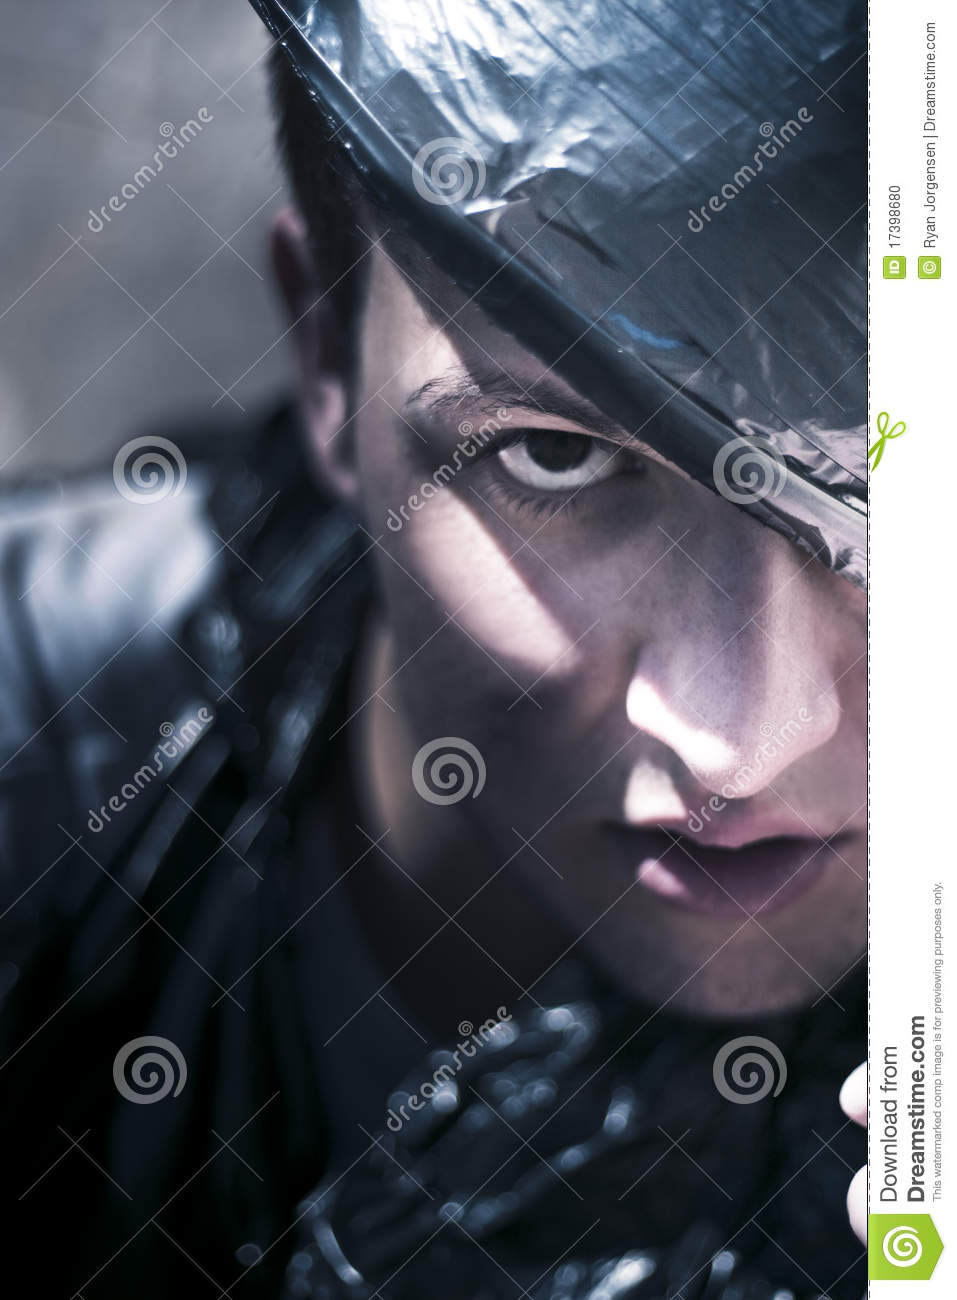 Mugshots additionally Oscar Pistorius Trial Five Best People To Follow On Twitter in addition 18zdoyk moreover OlympianOscarPistorius together with Stock Photo Dark Evil Man Image17398680. on oscar pistorius mugs